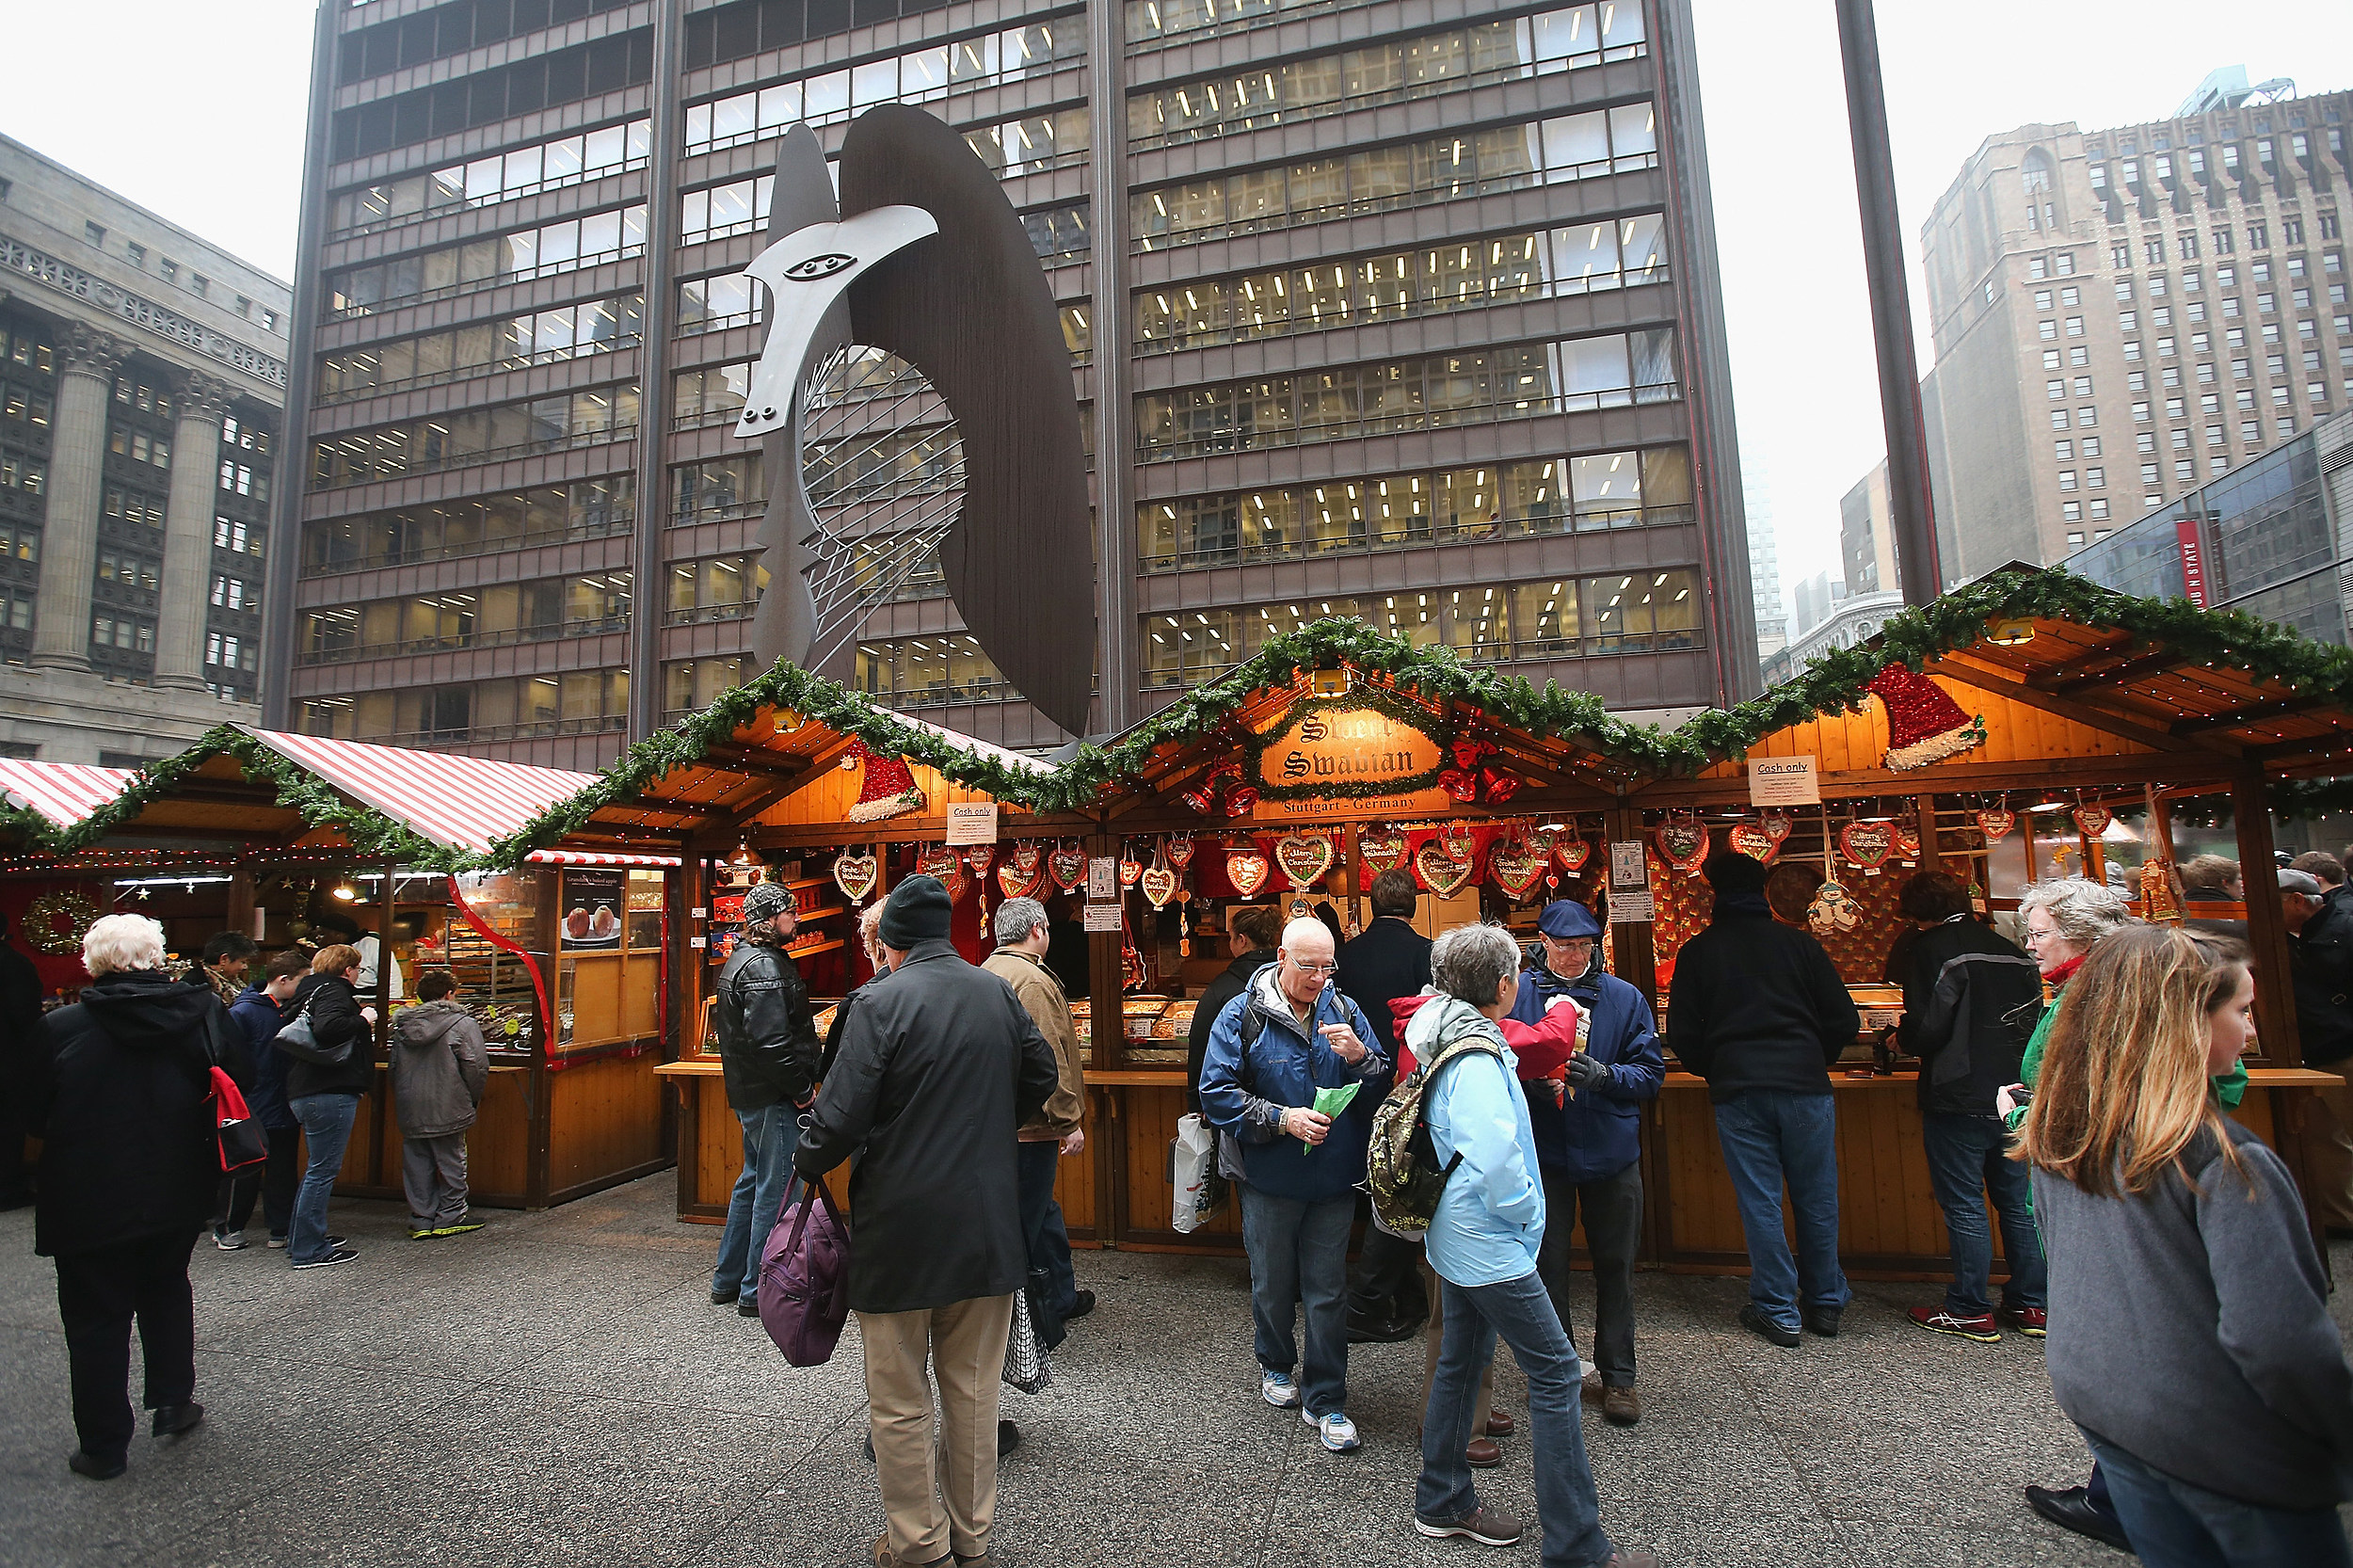 Holiday Market In Chicago Offers Shoppers Seasonal Goods